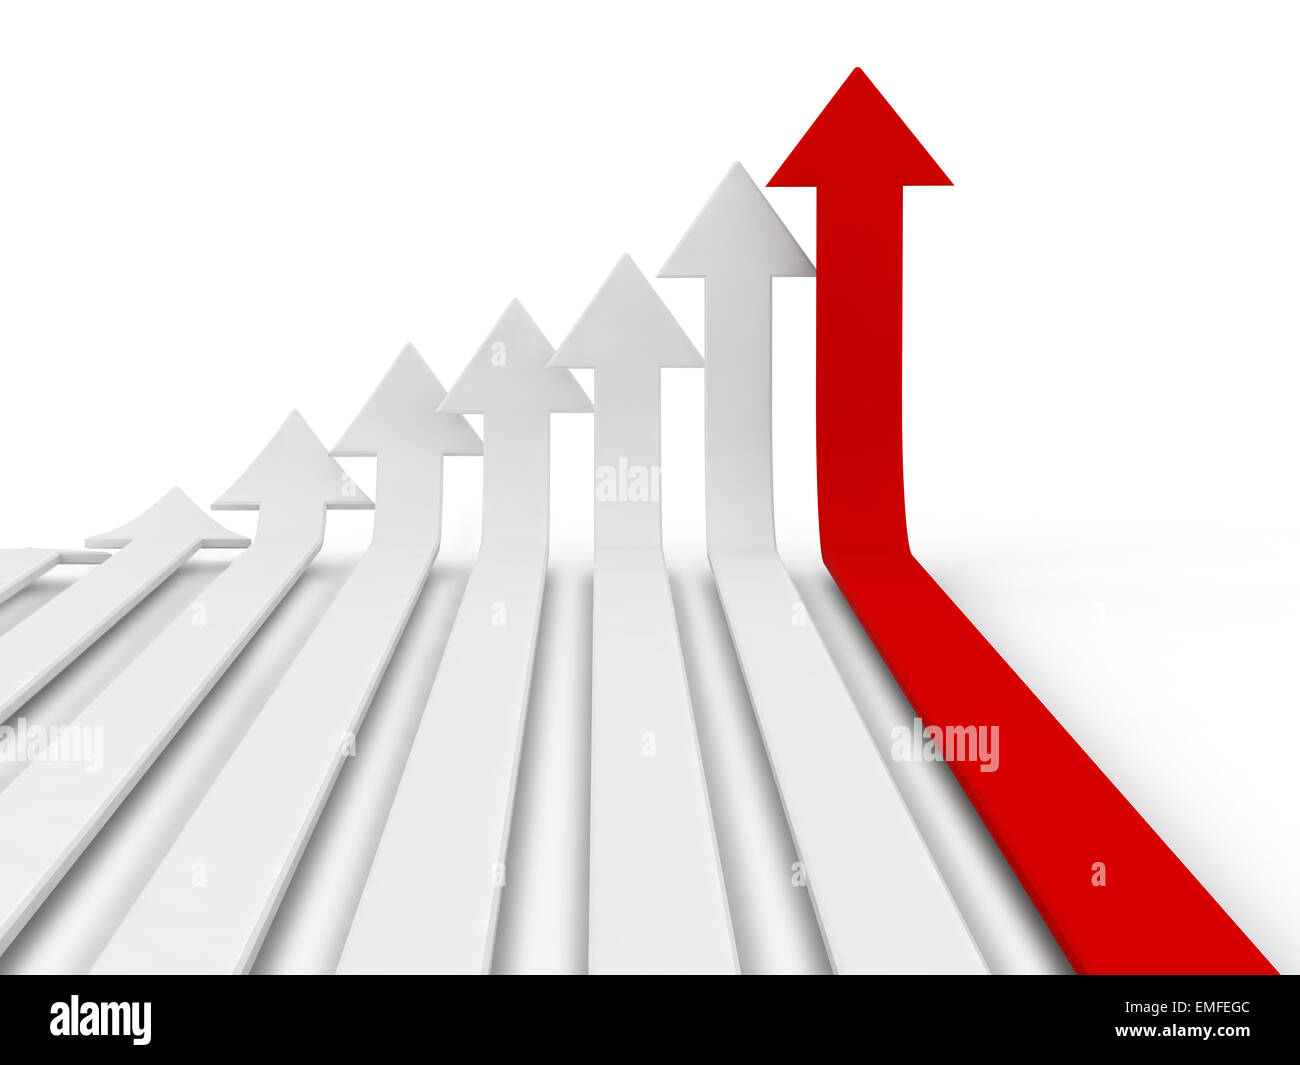 A red arrow sign placed observably in a pile of white arrow signs. - Stock Image